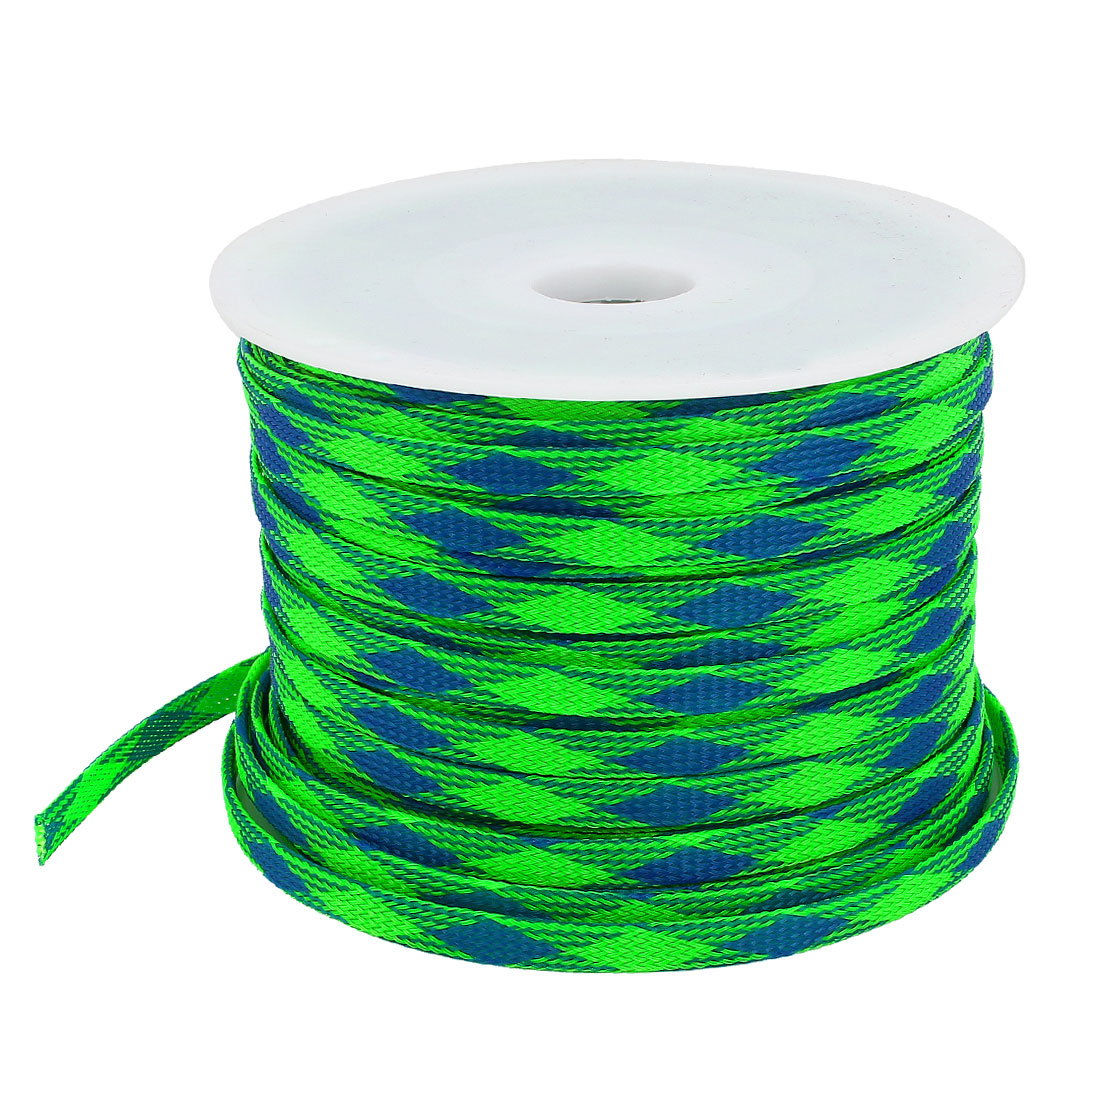 10mm Width Auto Audio Braided Cable Wire Sheathing Sleeve Harness Wiring Sleeves Blue Green